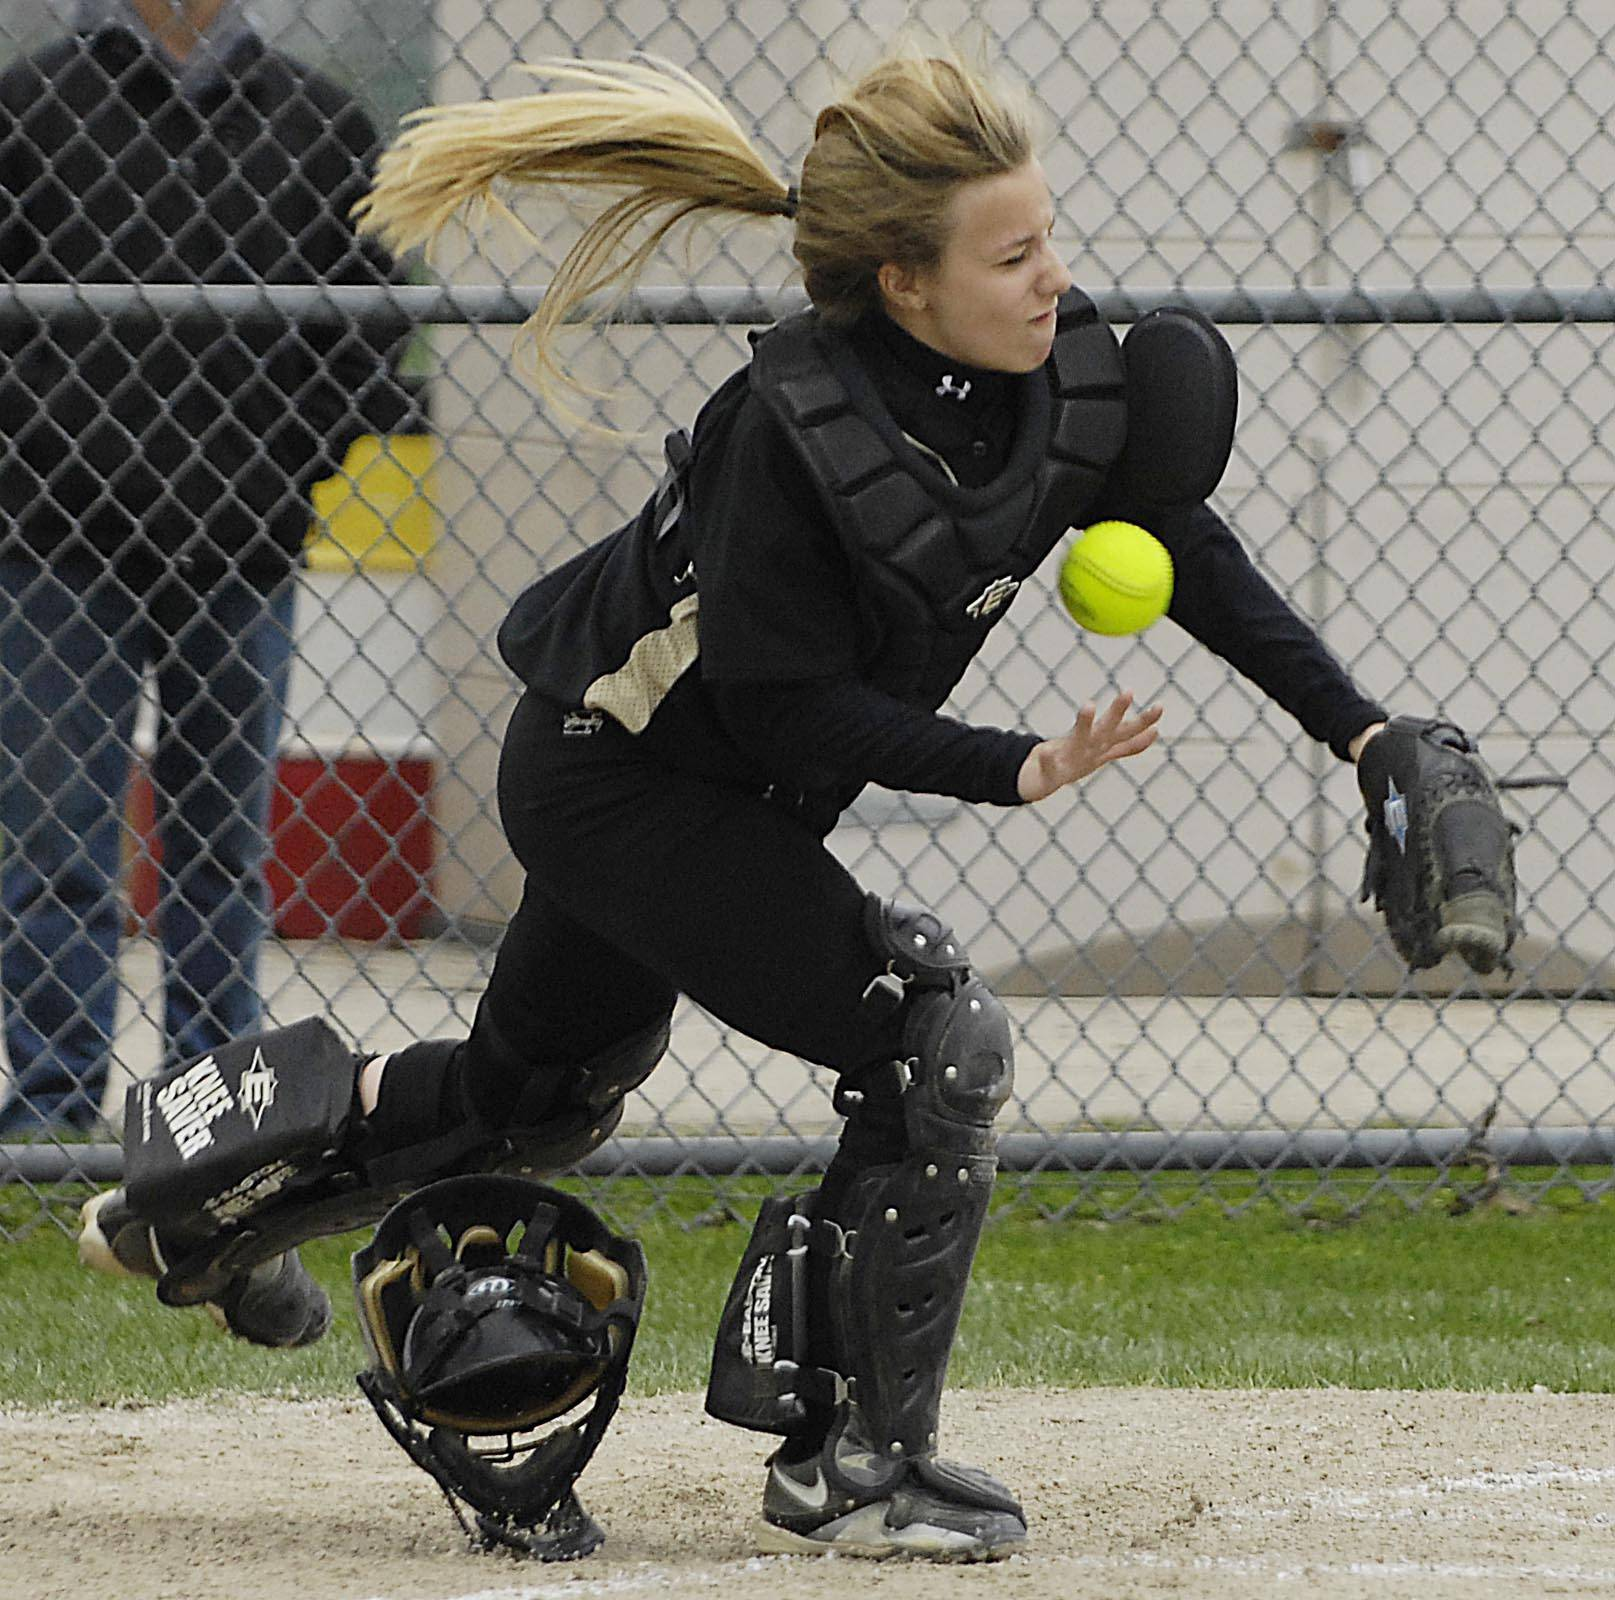 Streamwood catcher Natalie Filippo trips over her mask and misses a foul ball pop up off the bat of Batavia's Rachael Lovestrand in the first inning Monday in Batavia. Lovestrand then hit an RBI triple to start the three-score inning.